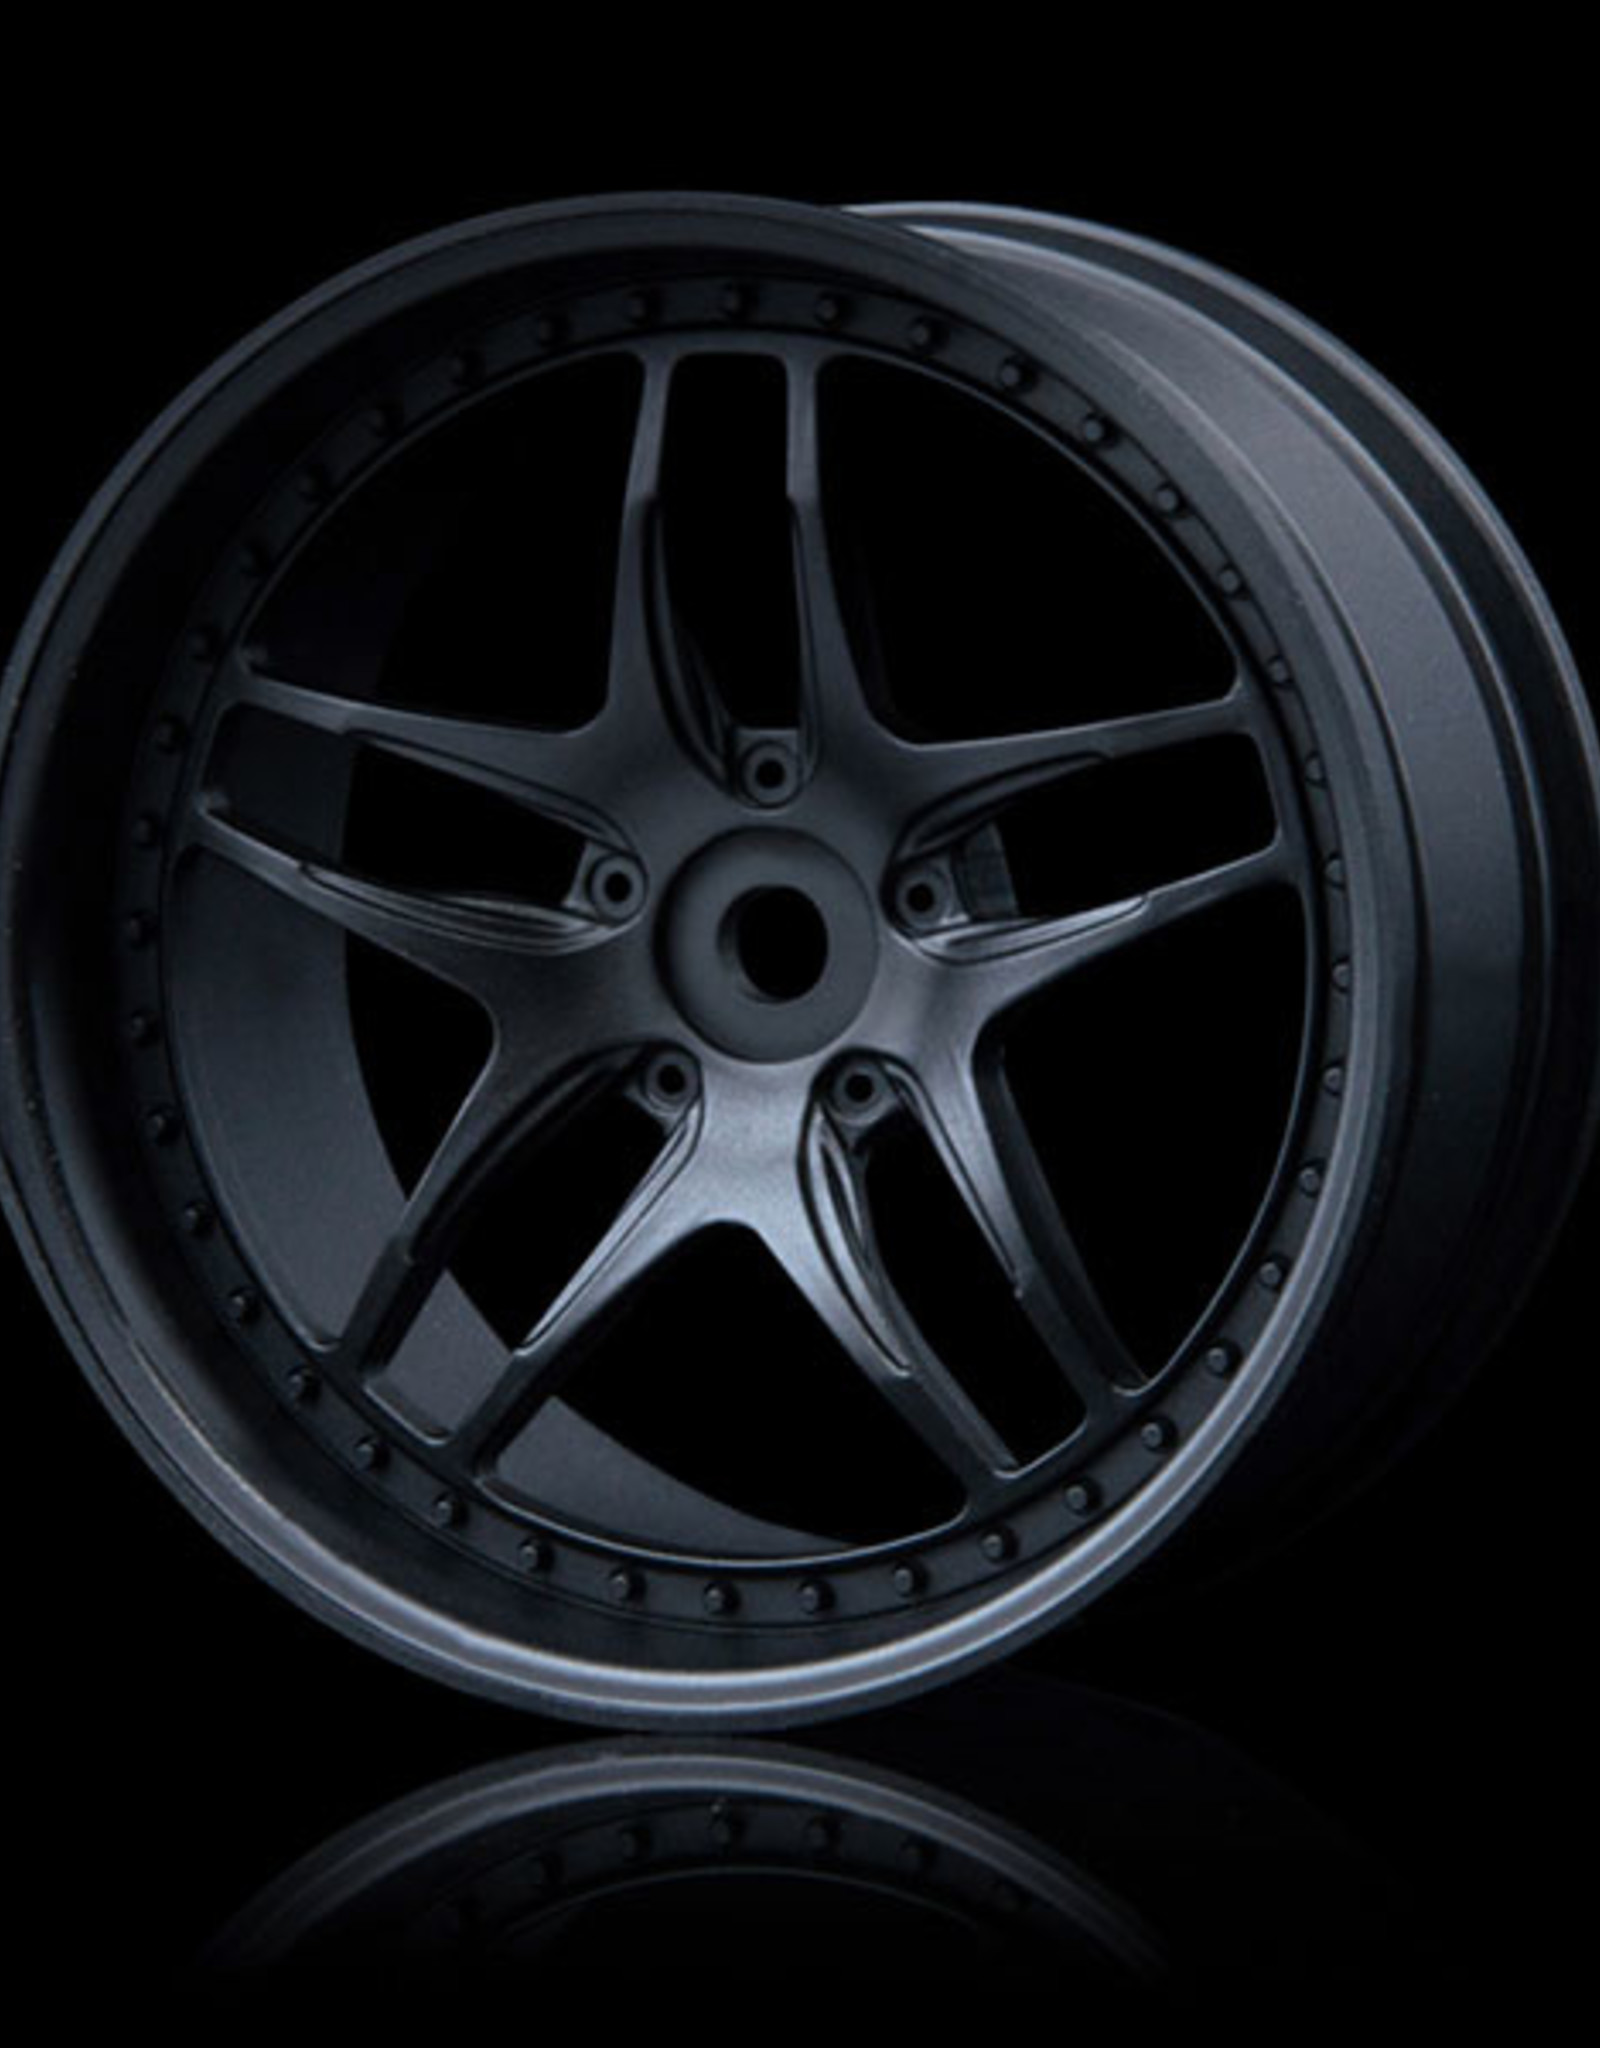 MST FB Wheel (4) by MST Flat Black 5mm